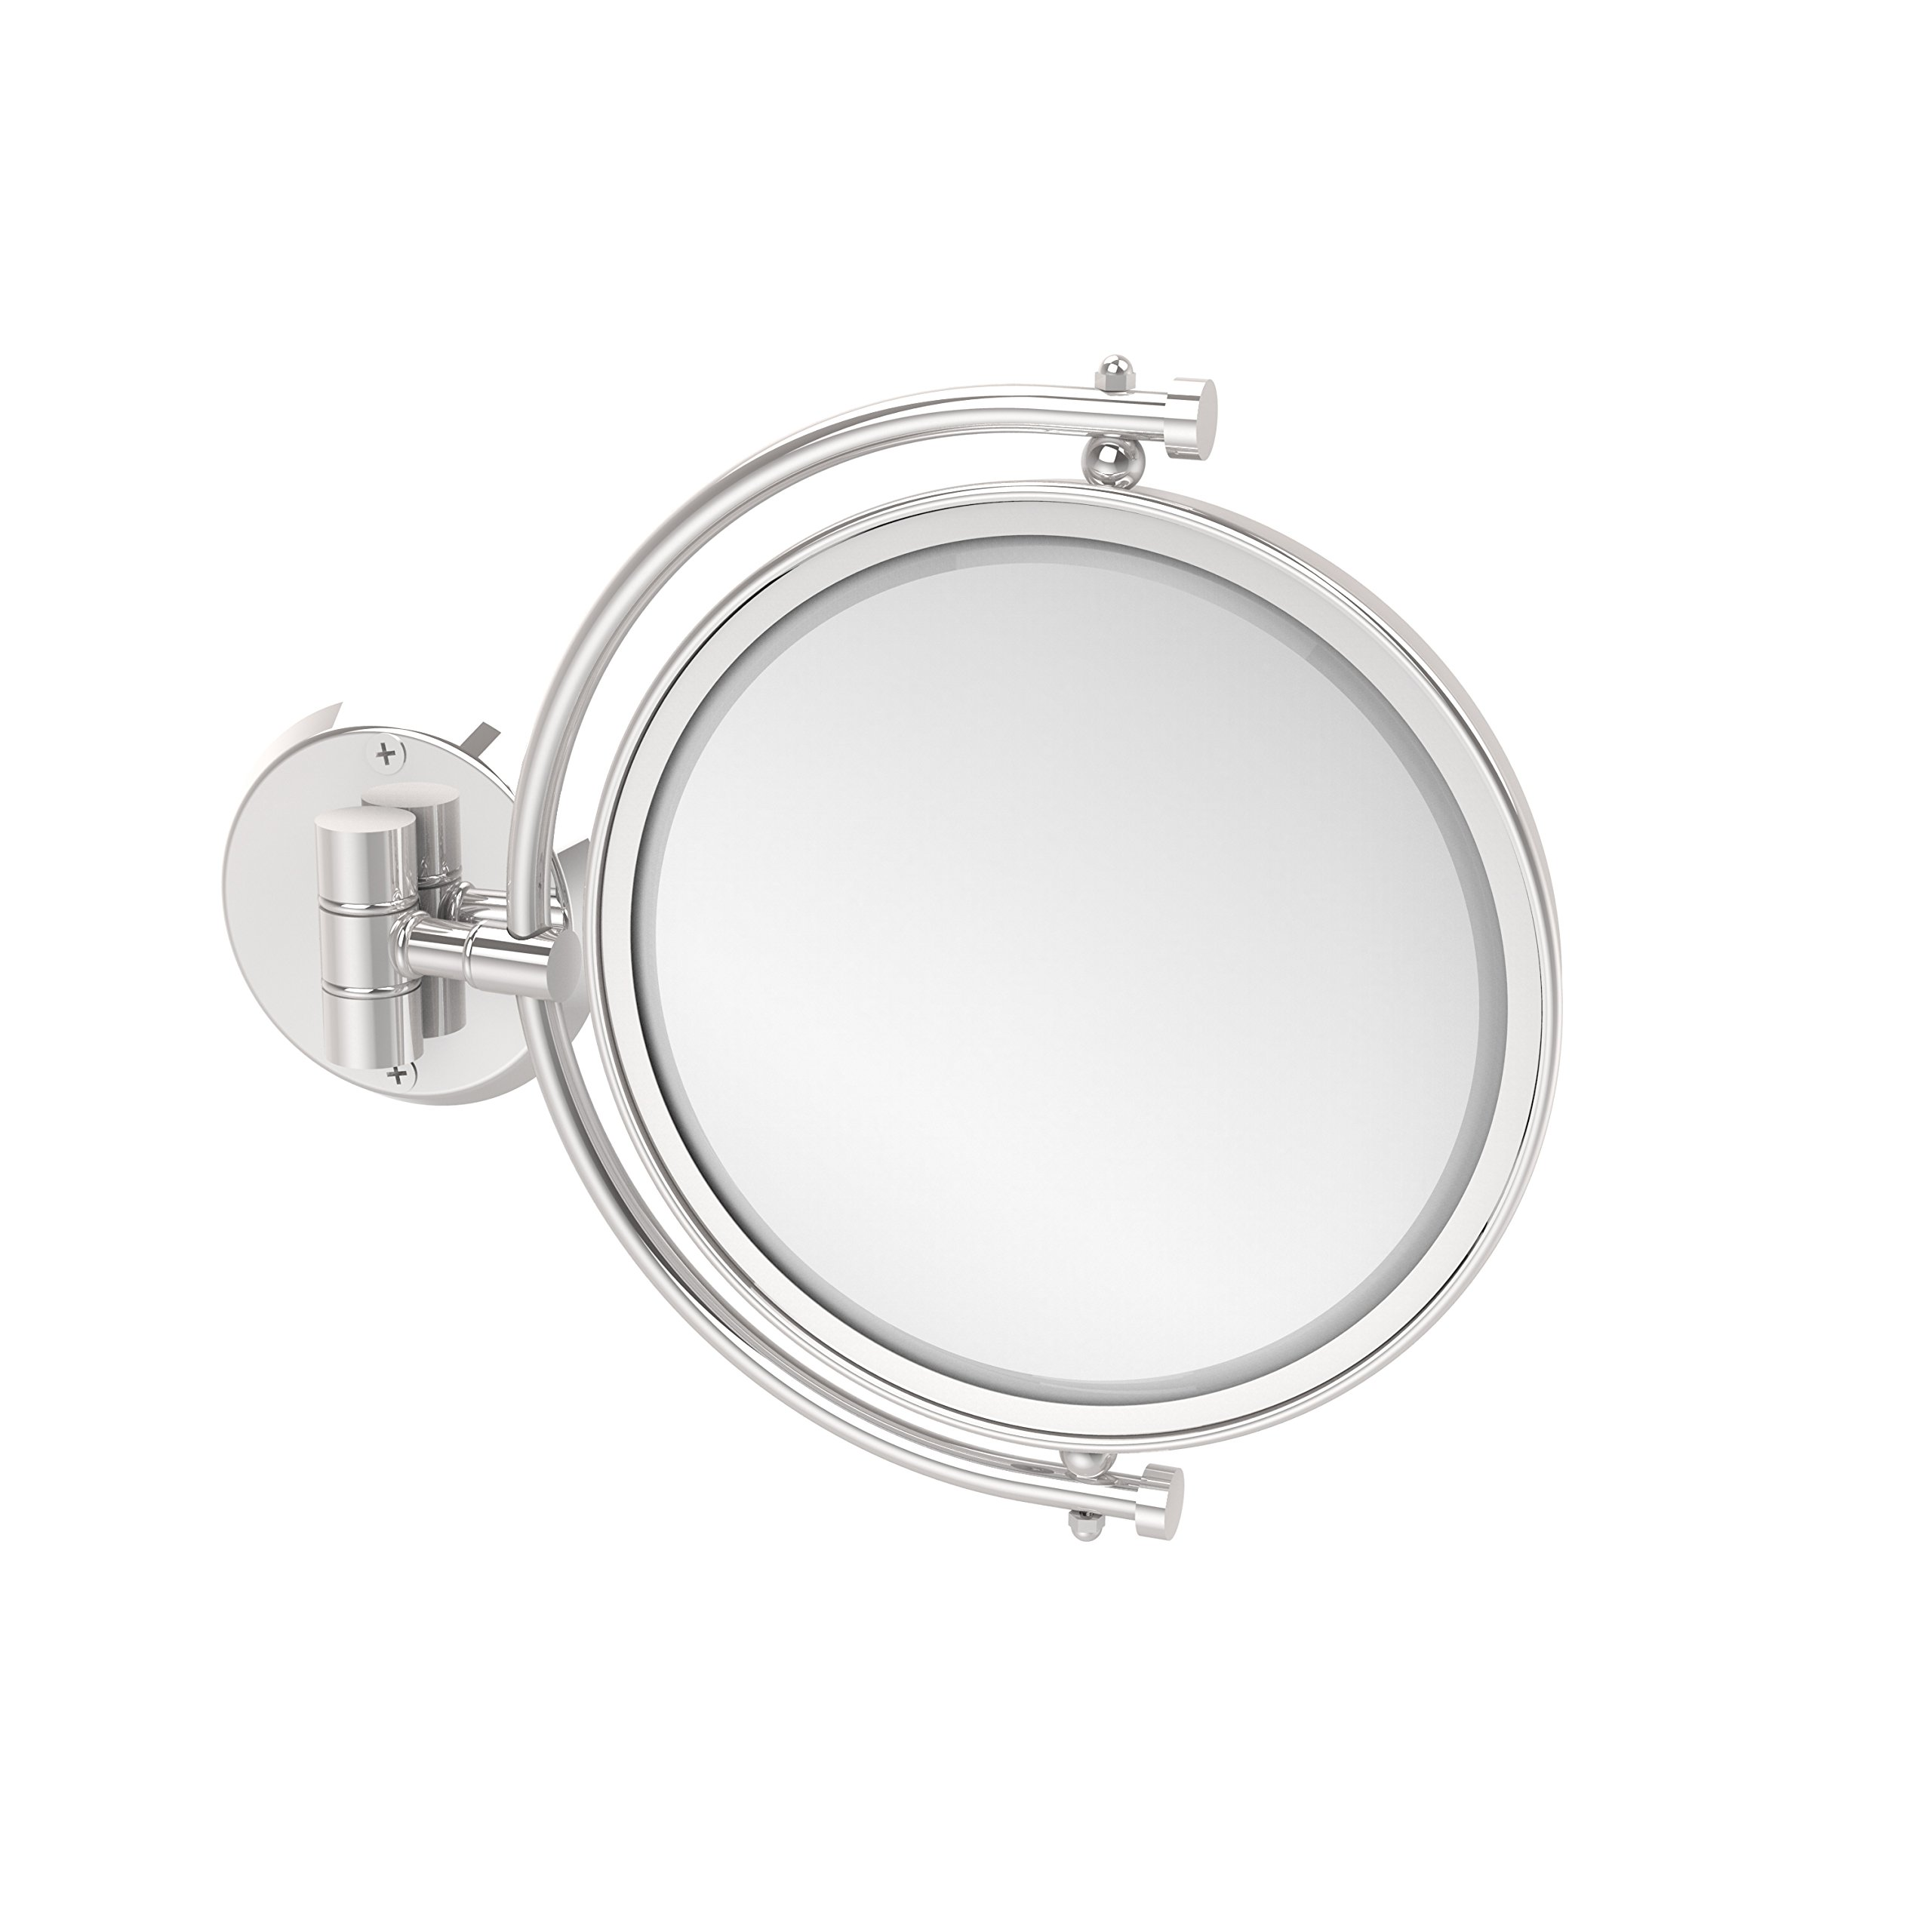 Allied Brass WM-4/5X-PC 8-Inch Mirror with 5x Magnification Extends 7-Inch, Polished Chrome